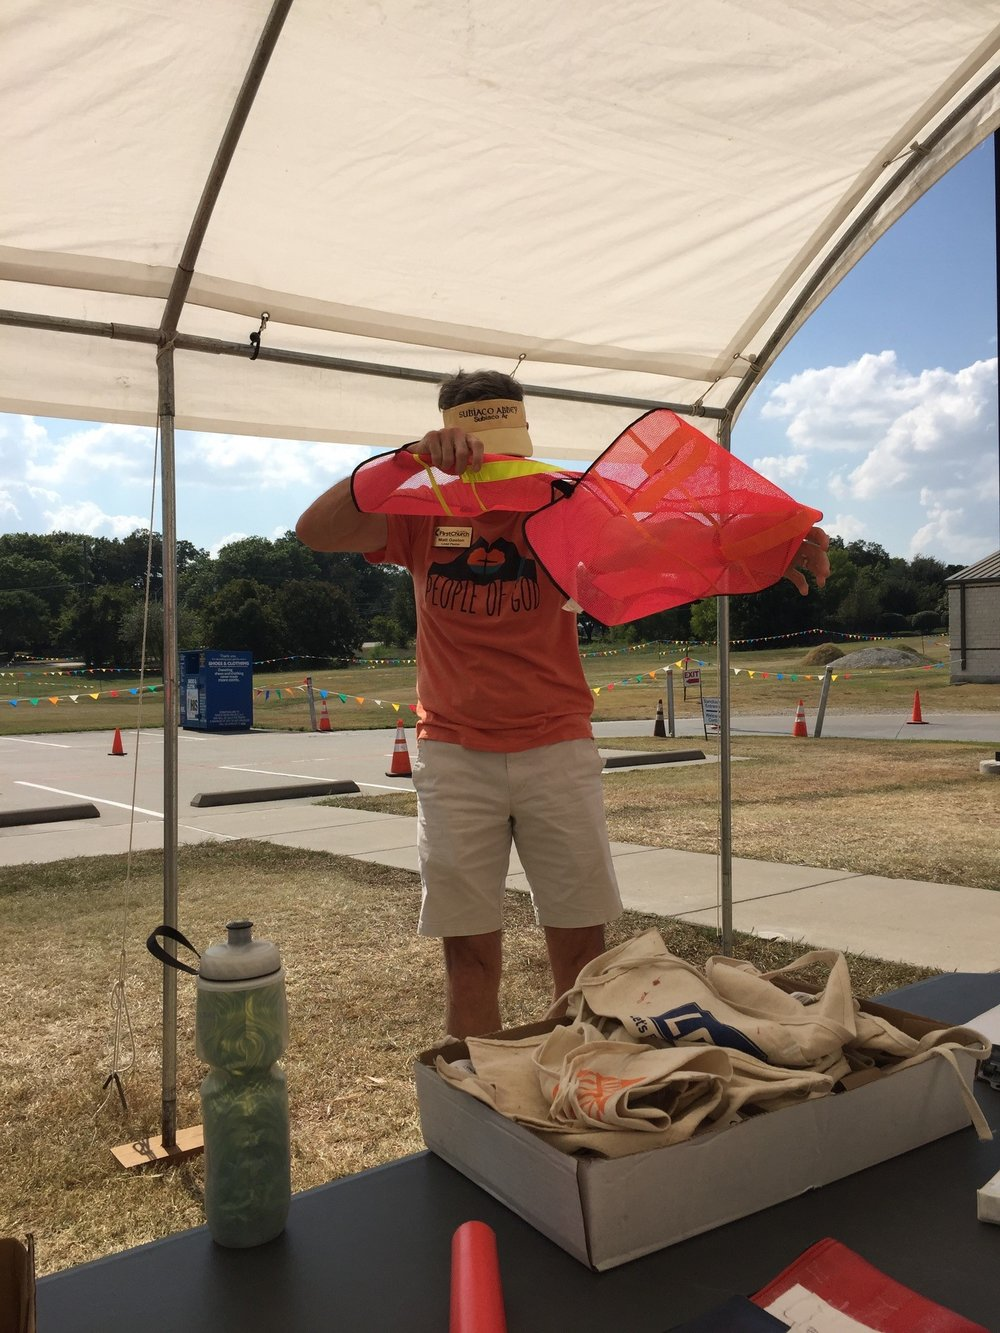 Pastor Matt grounded by a safety vest at the Plano Balloon Festival this past Sunday.